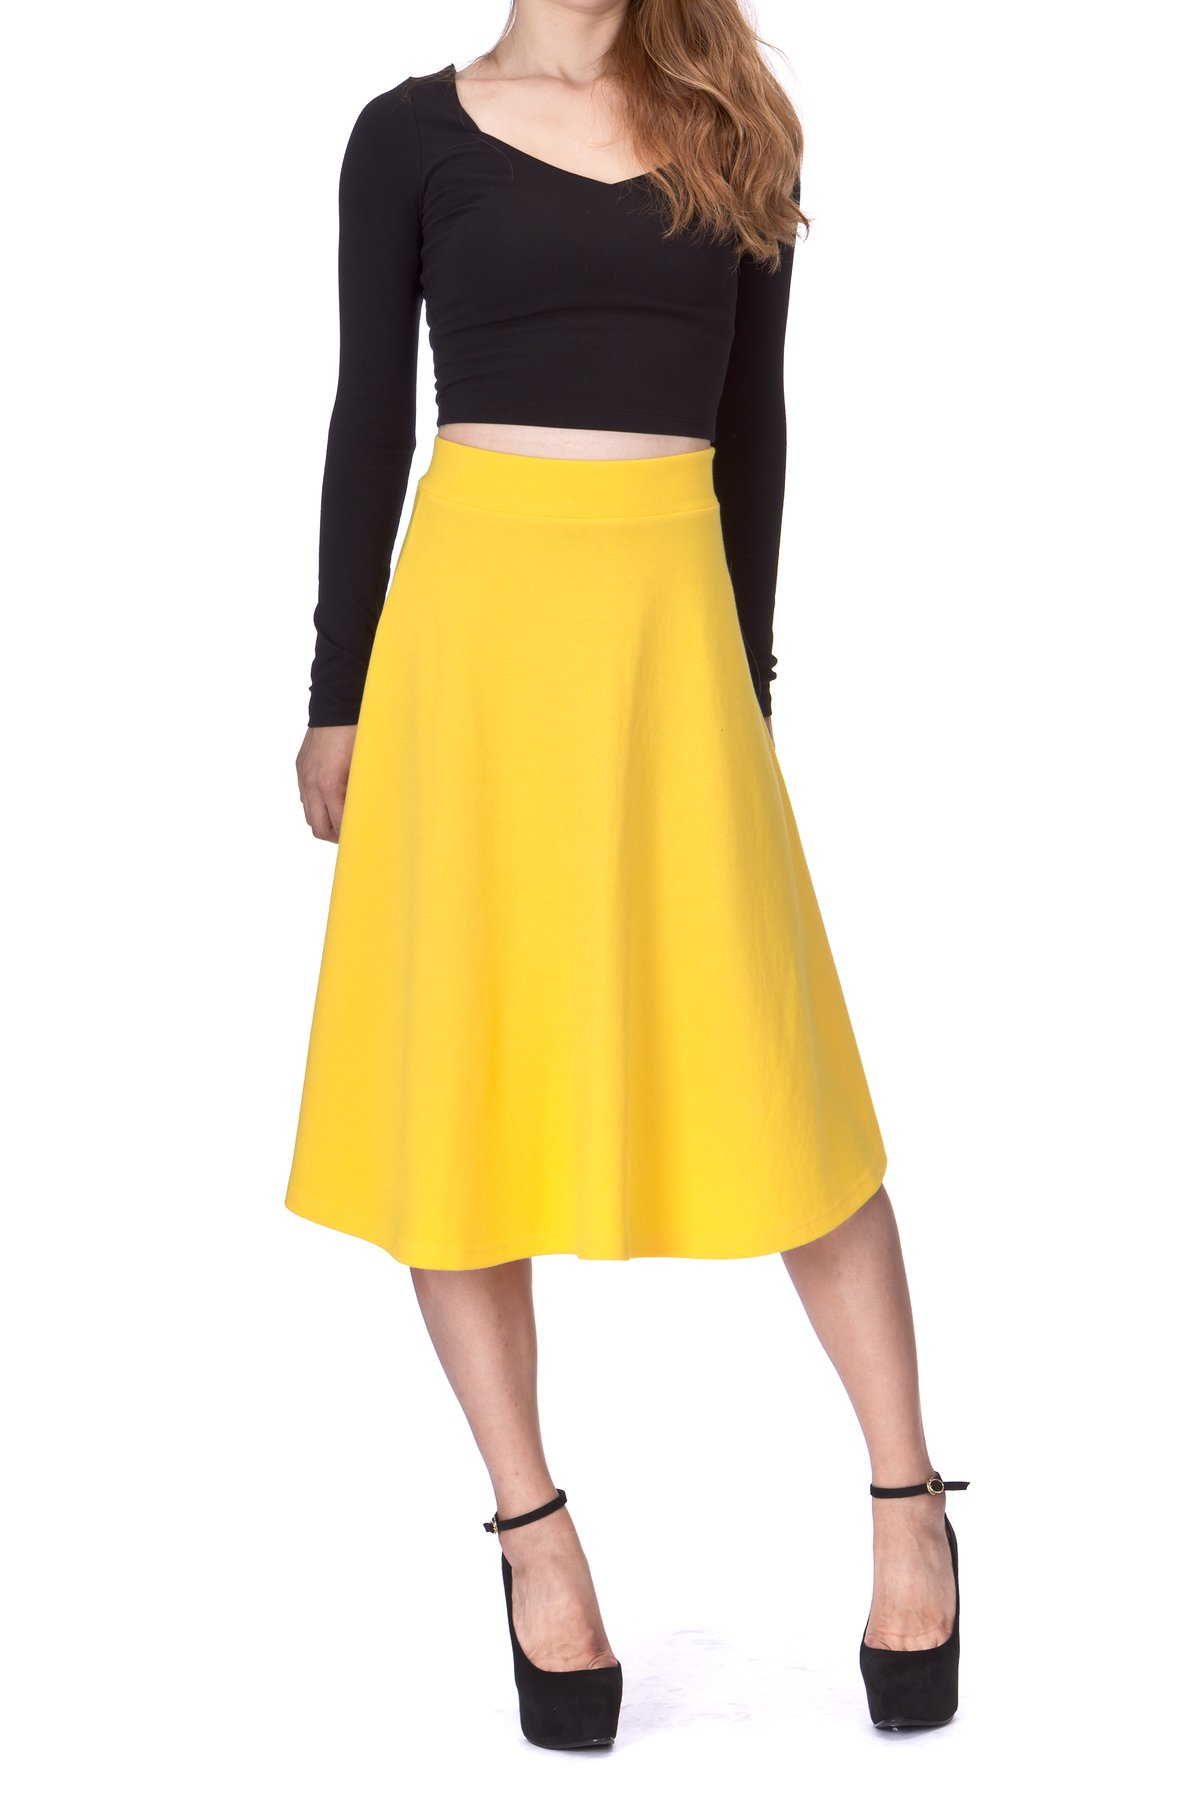 Everyday High Waist A Line Flared Skater Midi Skirt Yellow 04